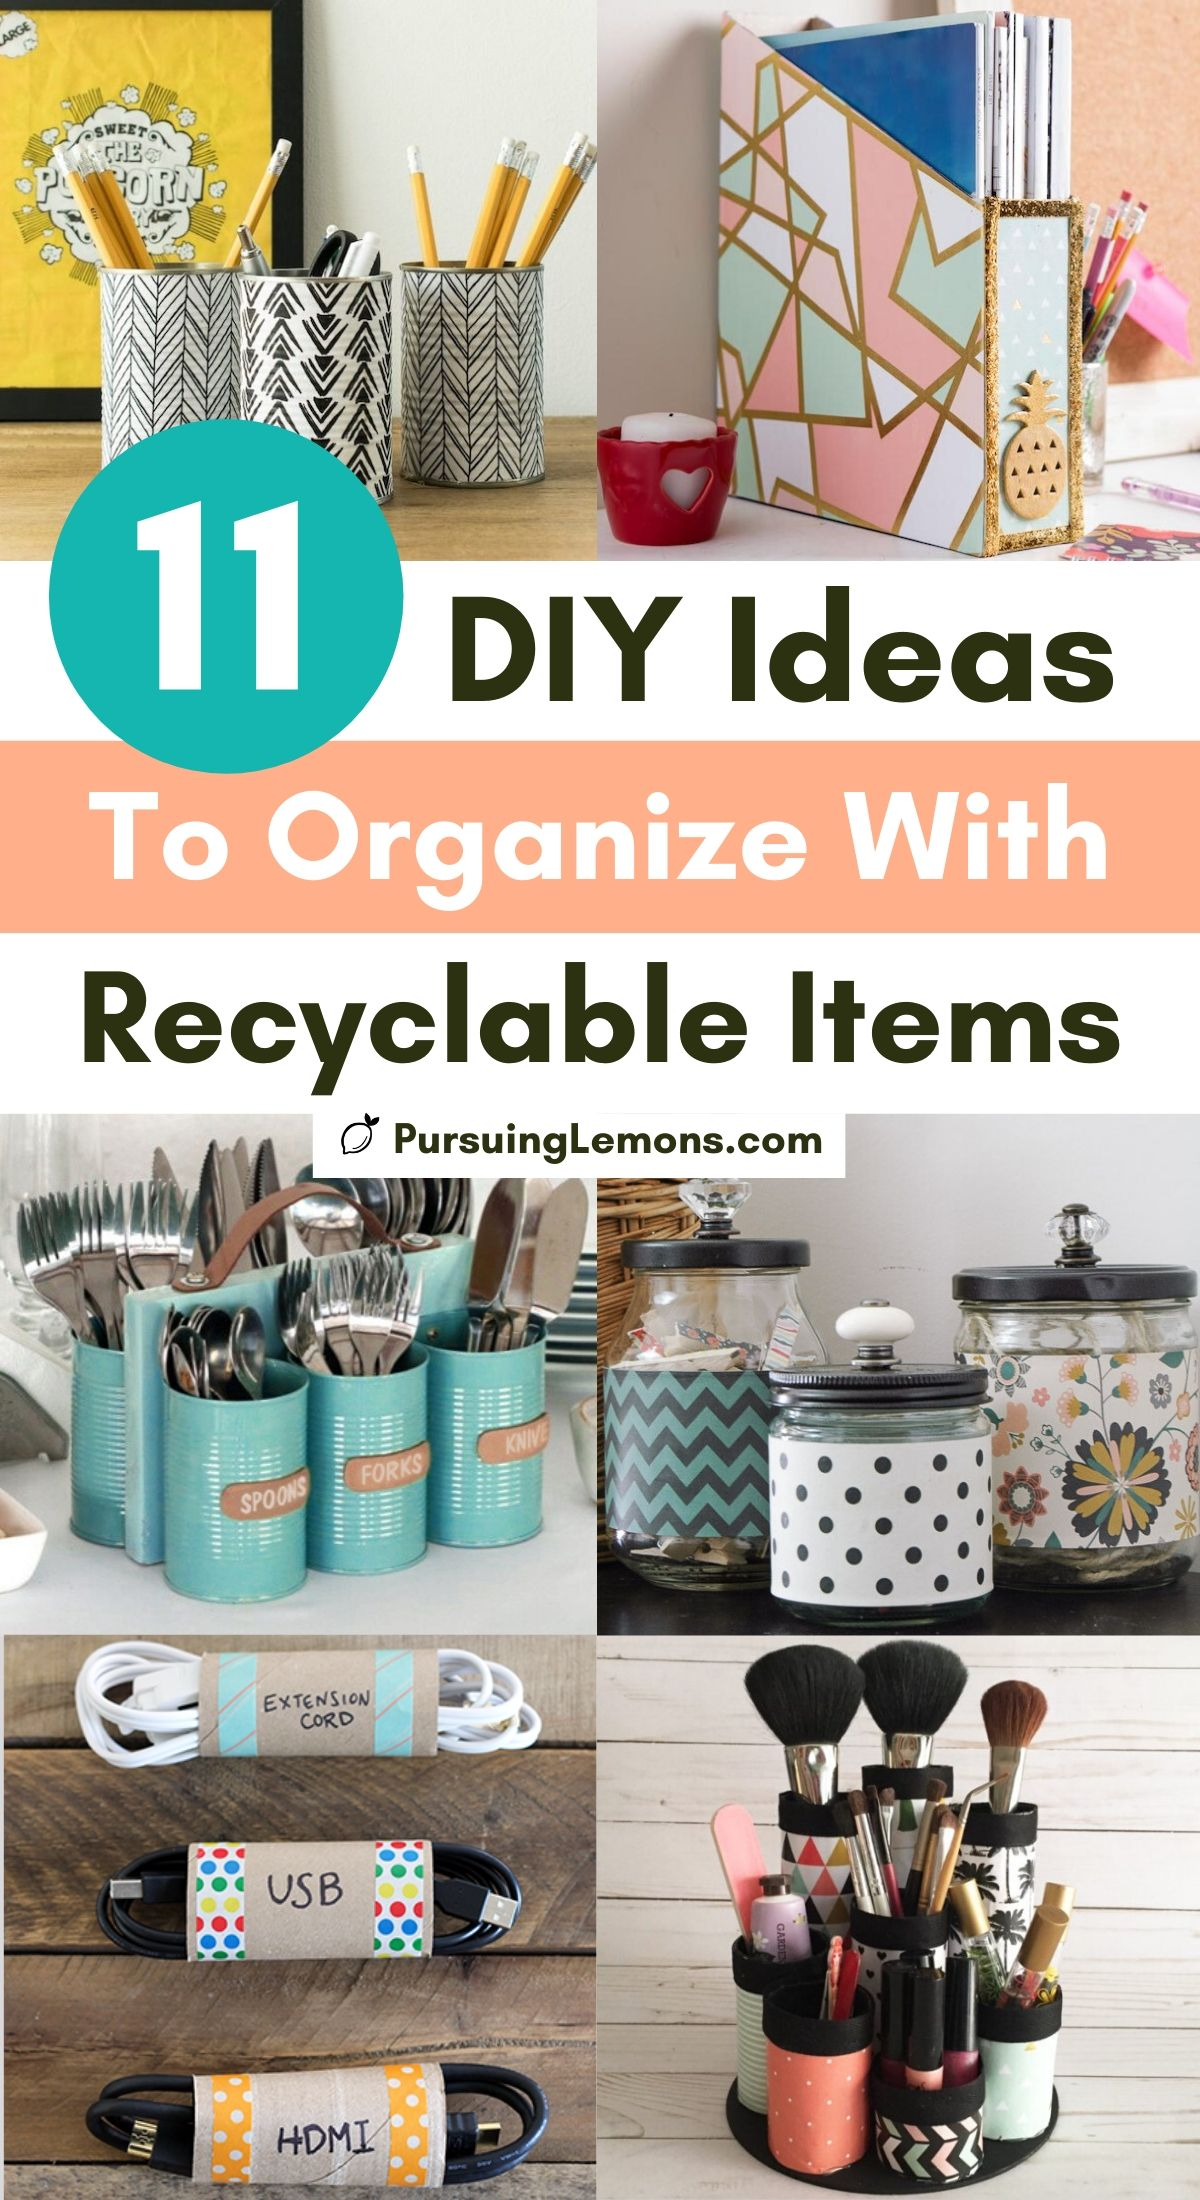 11 DIY Ideas To Organize With Recyclable Items | Want to organize without spending a ton of money? Try these DIY organization ideas with recyclable items! The things you are throwing away can actually be used to create amazing organizers! #diyorganizers #recycle #cheaporganization